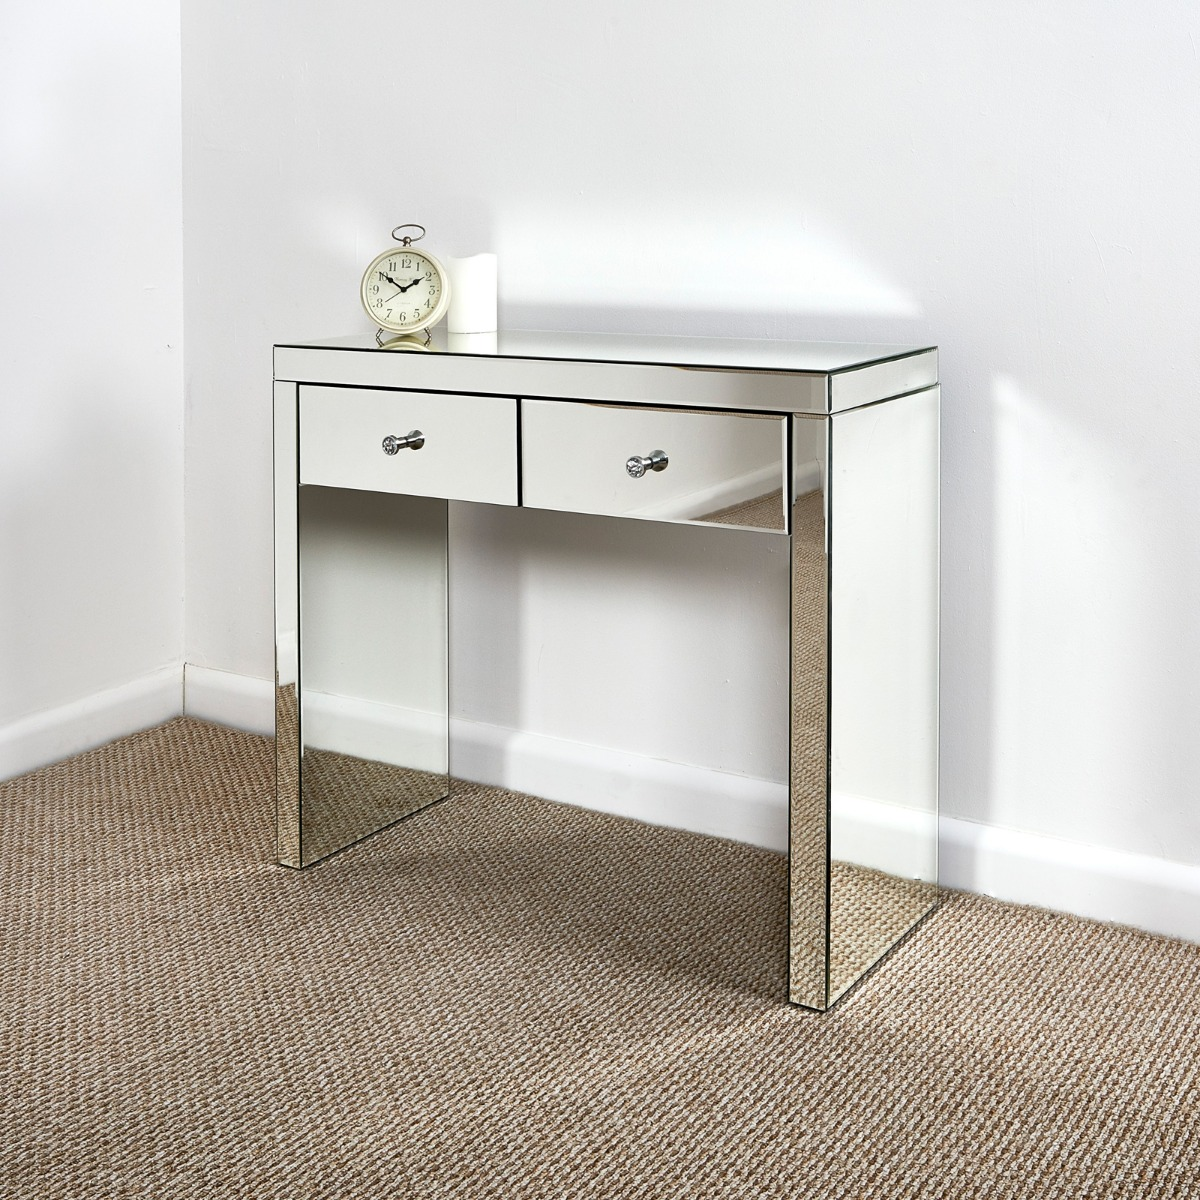 Glass mirrored furniture dressing tables console